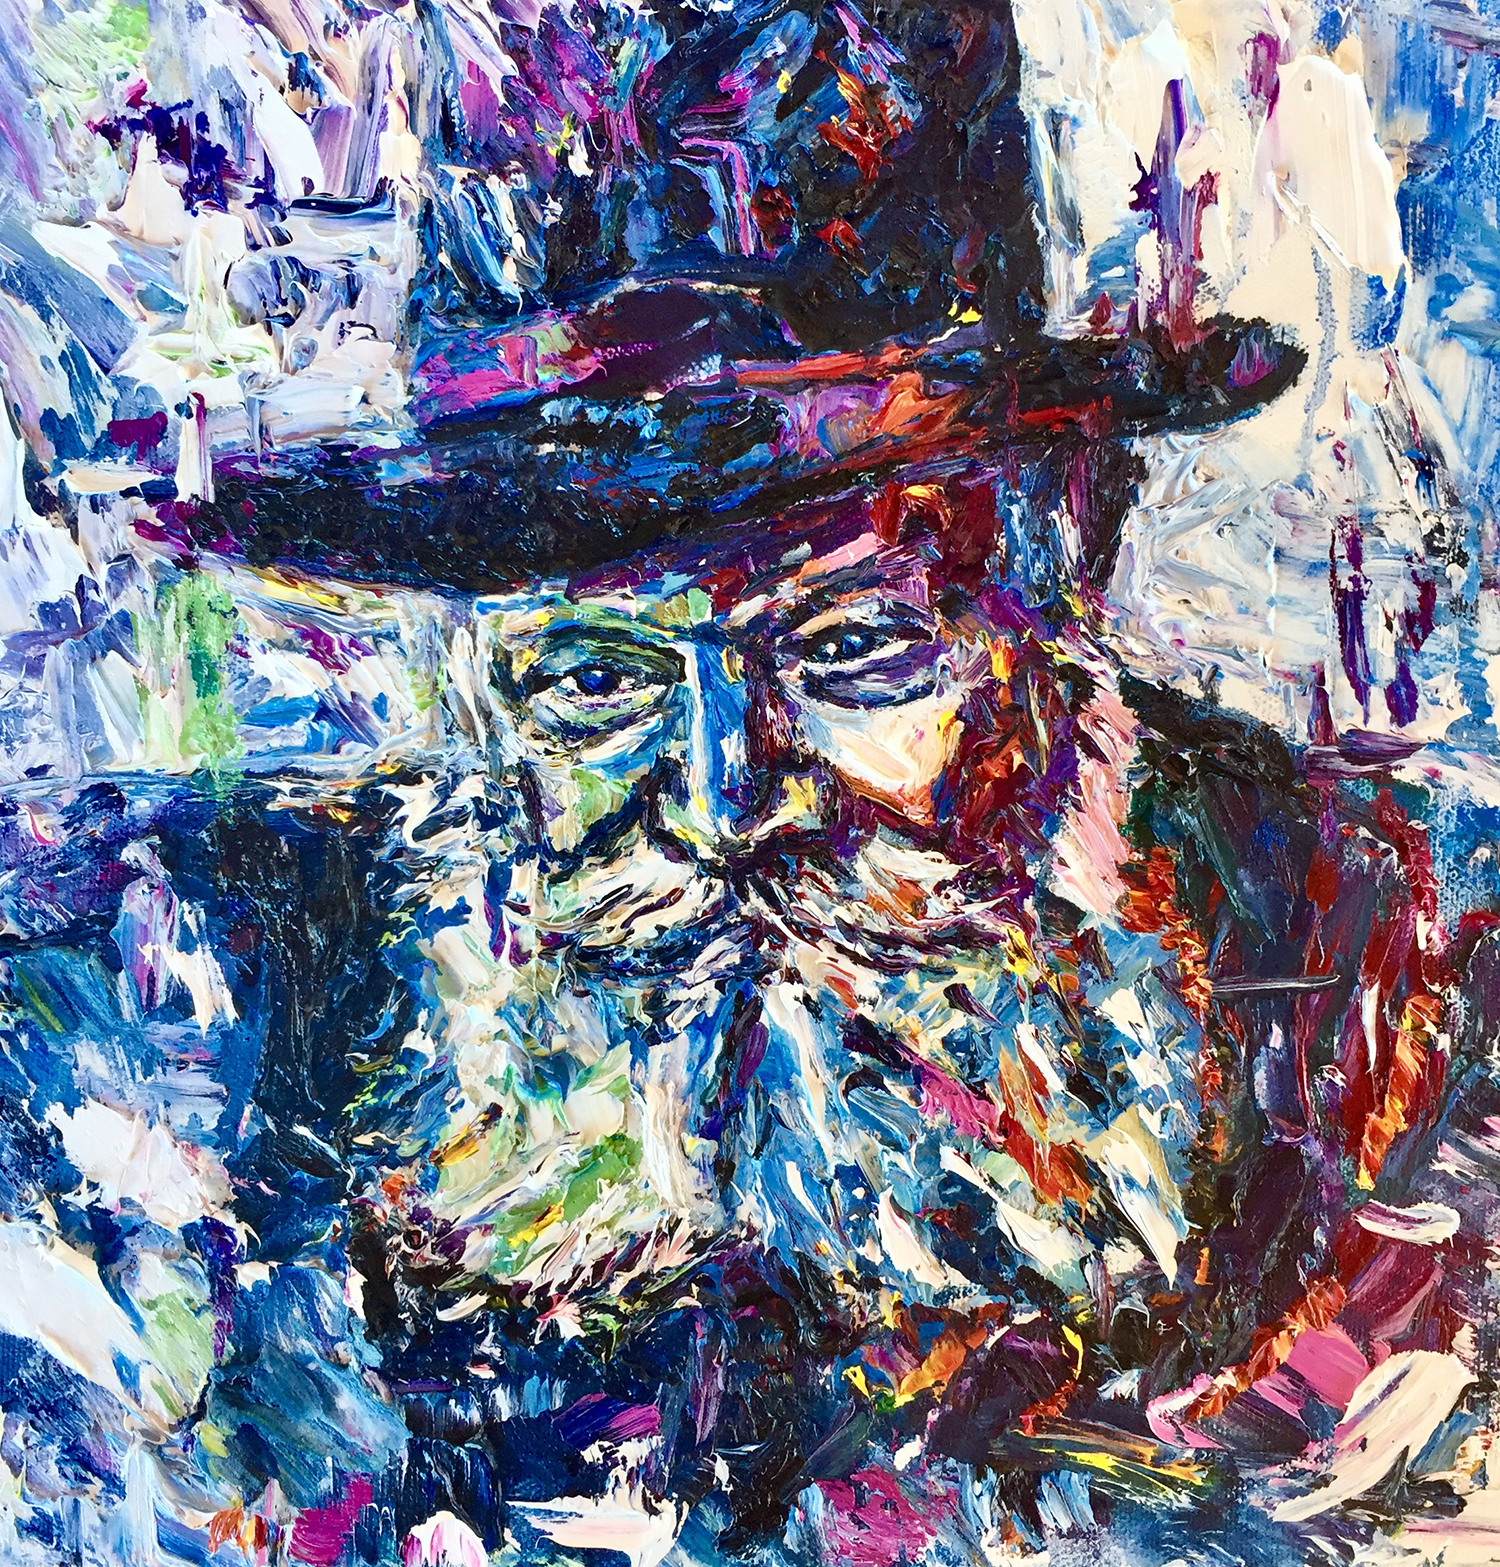 Our Rebbe